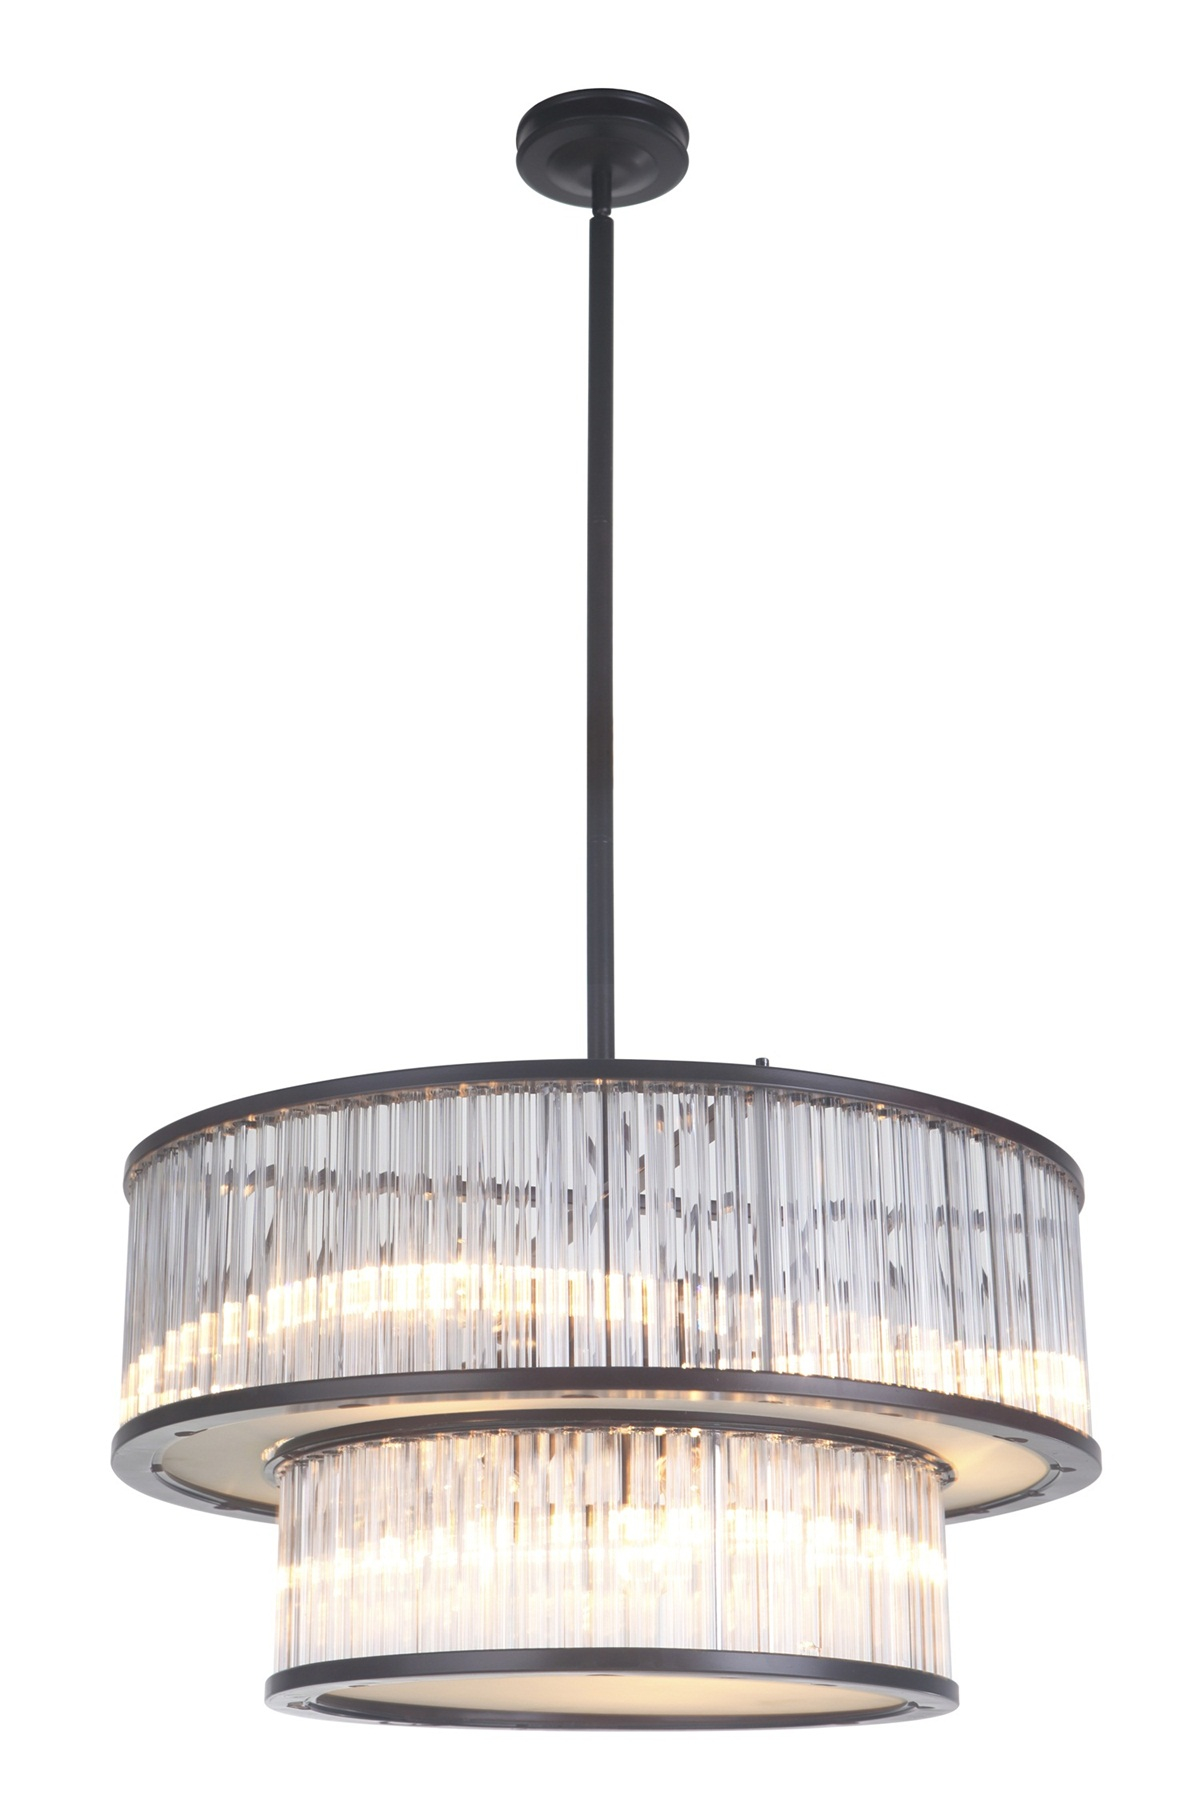 sc 1 st  An Interior design blog for the fashionable buyer & Mariana Home-452573 light on-modern-glam-pendant-lighting